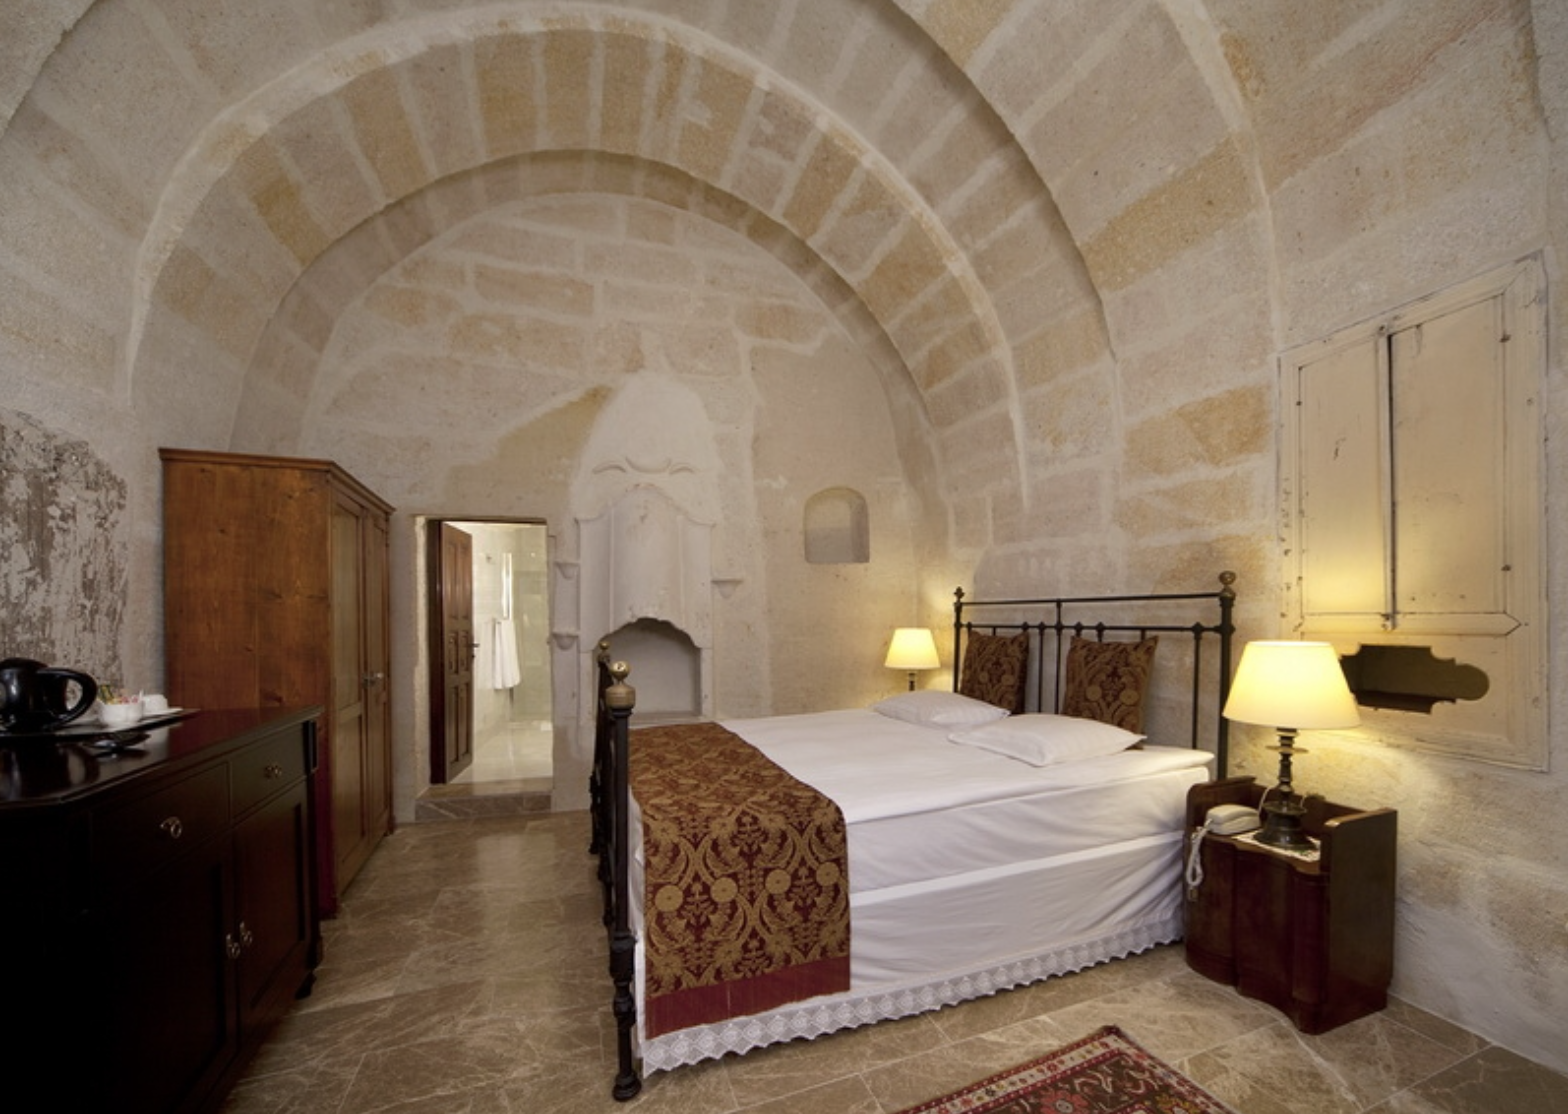 Bedroom suite with high naturally arched marble ceilings.